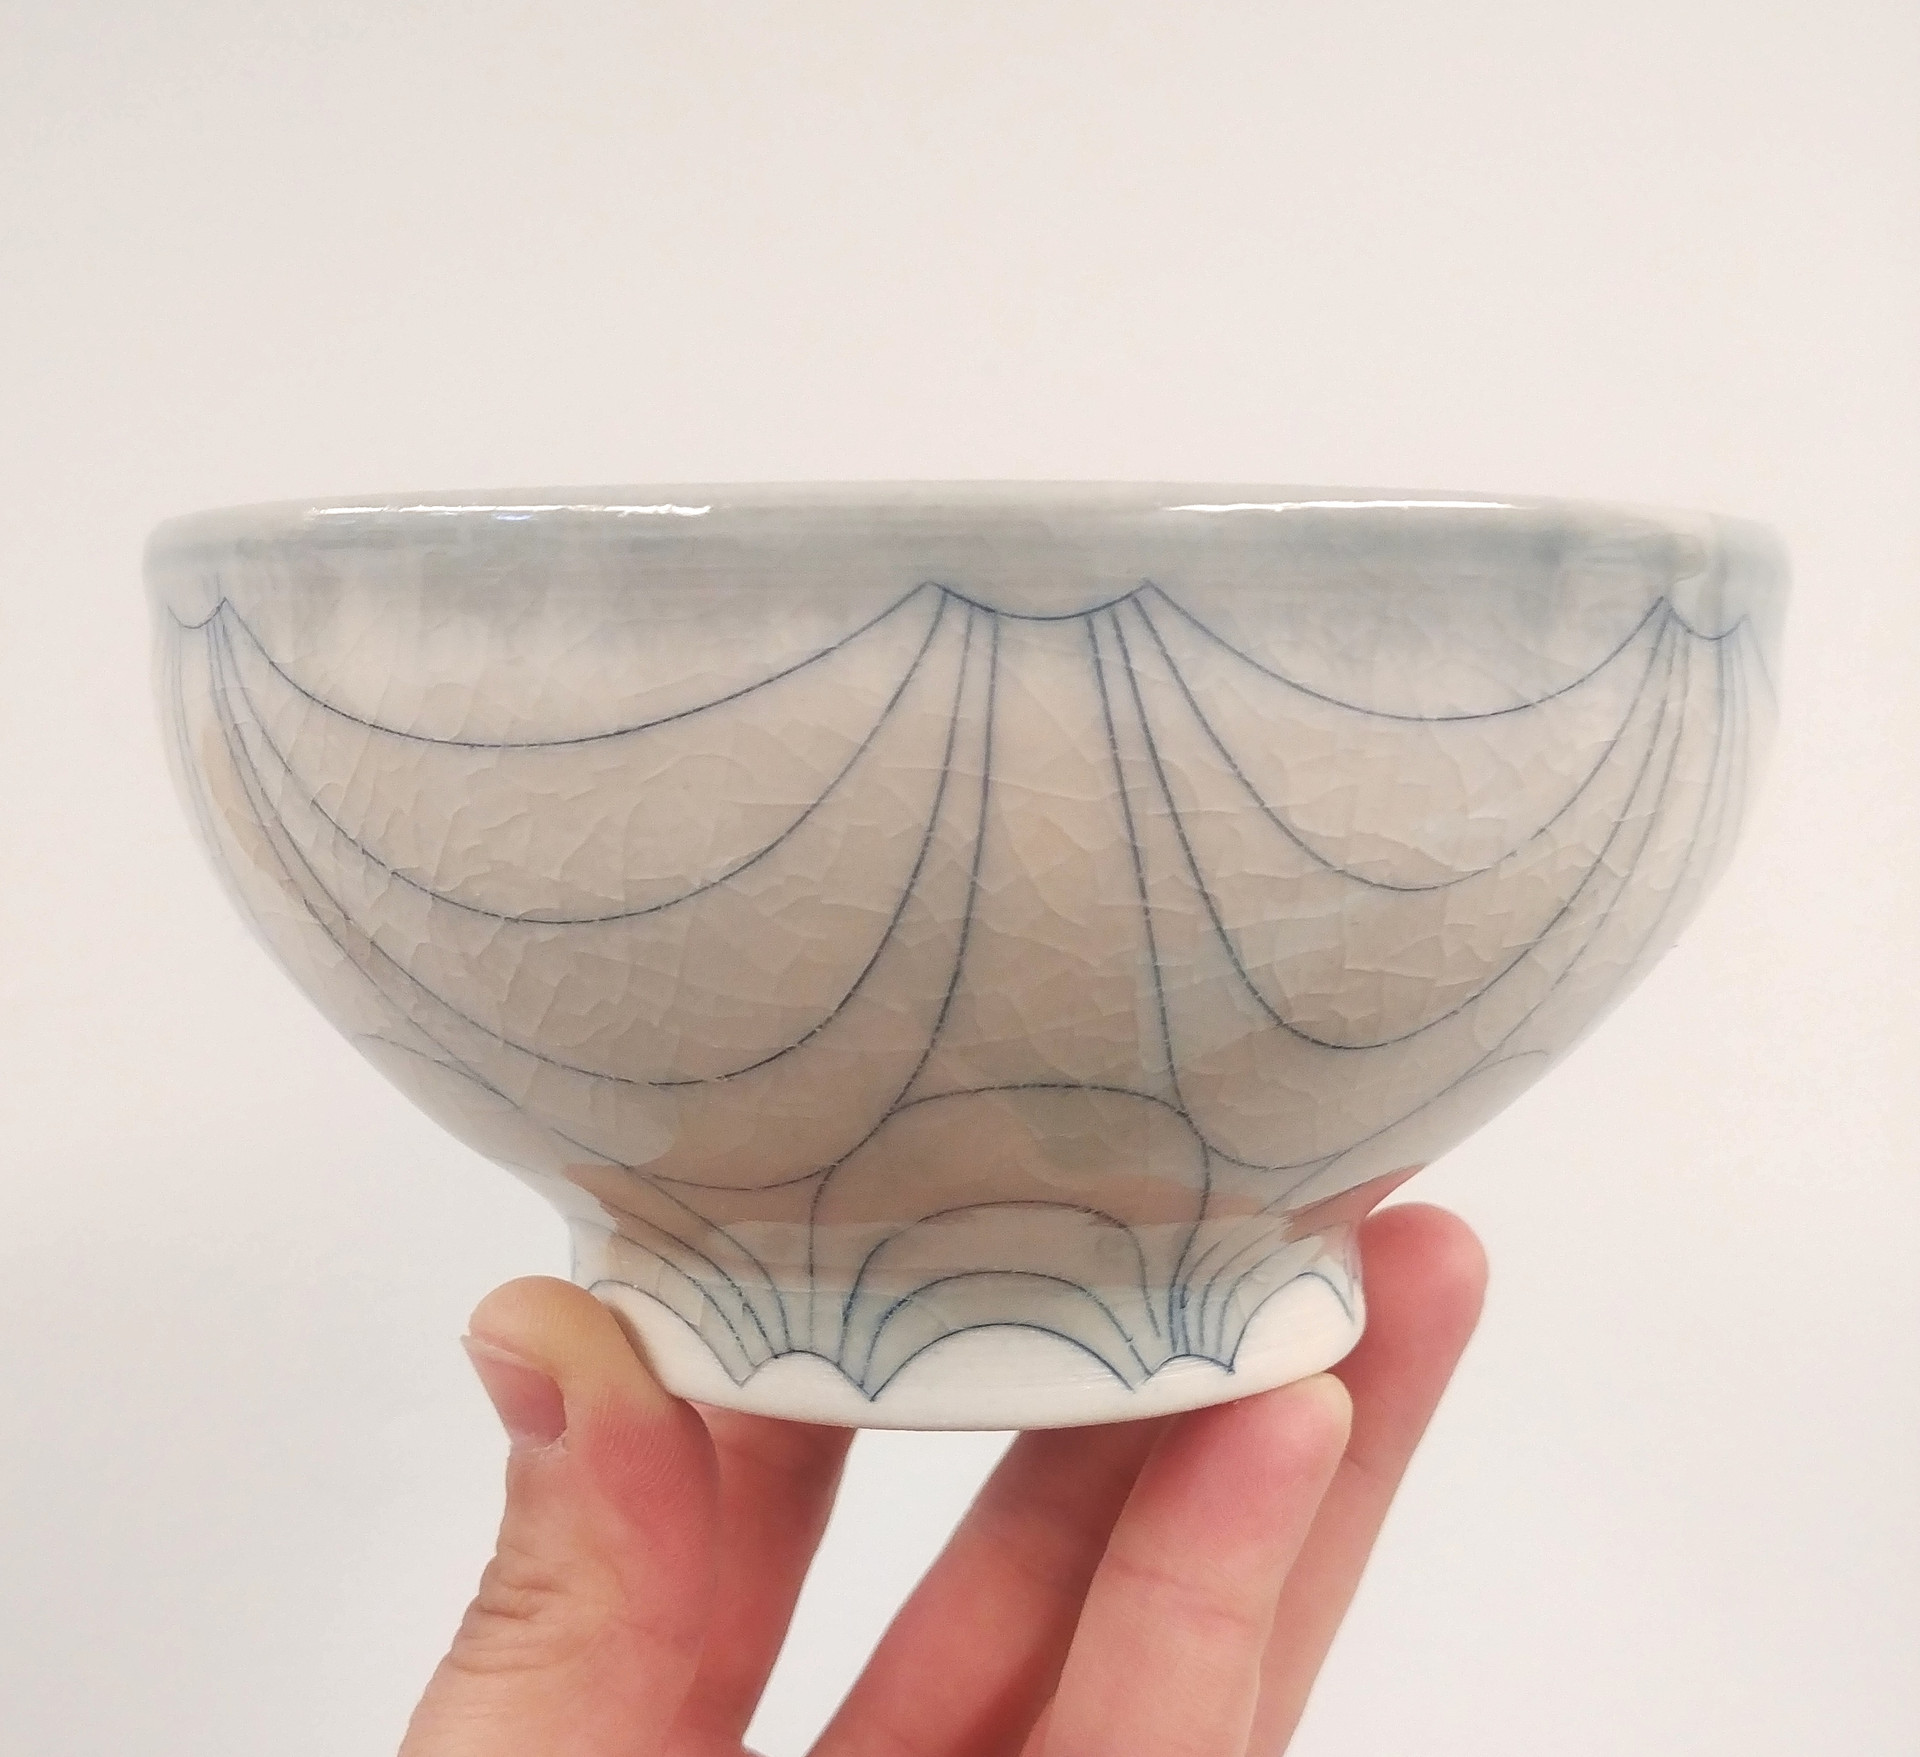 thrown, altered, and incised porcelain bowl